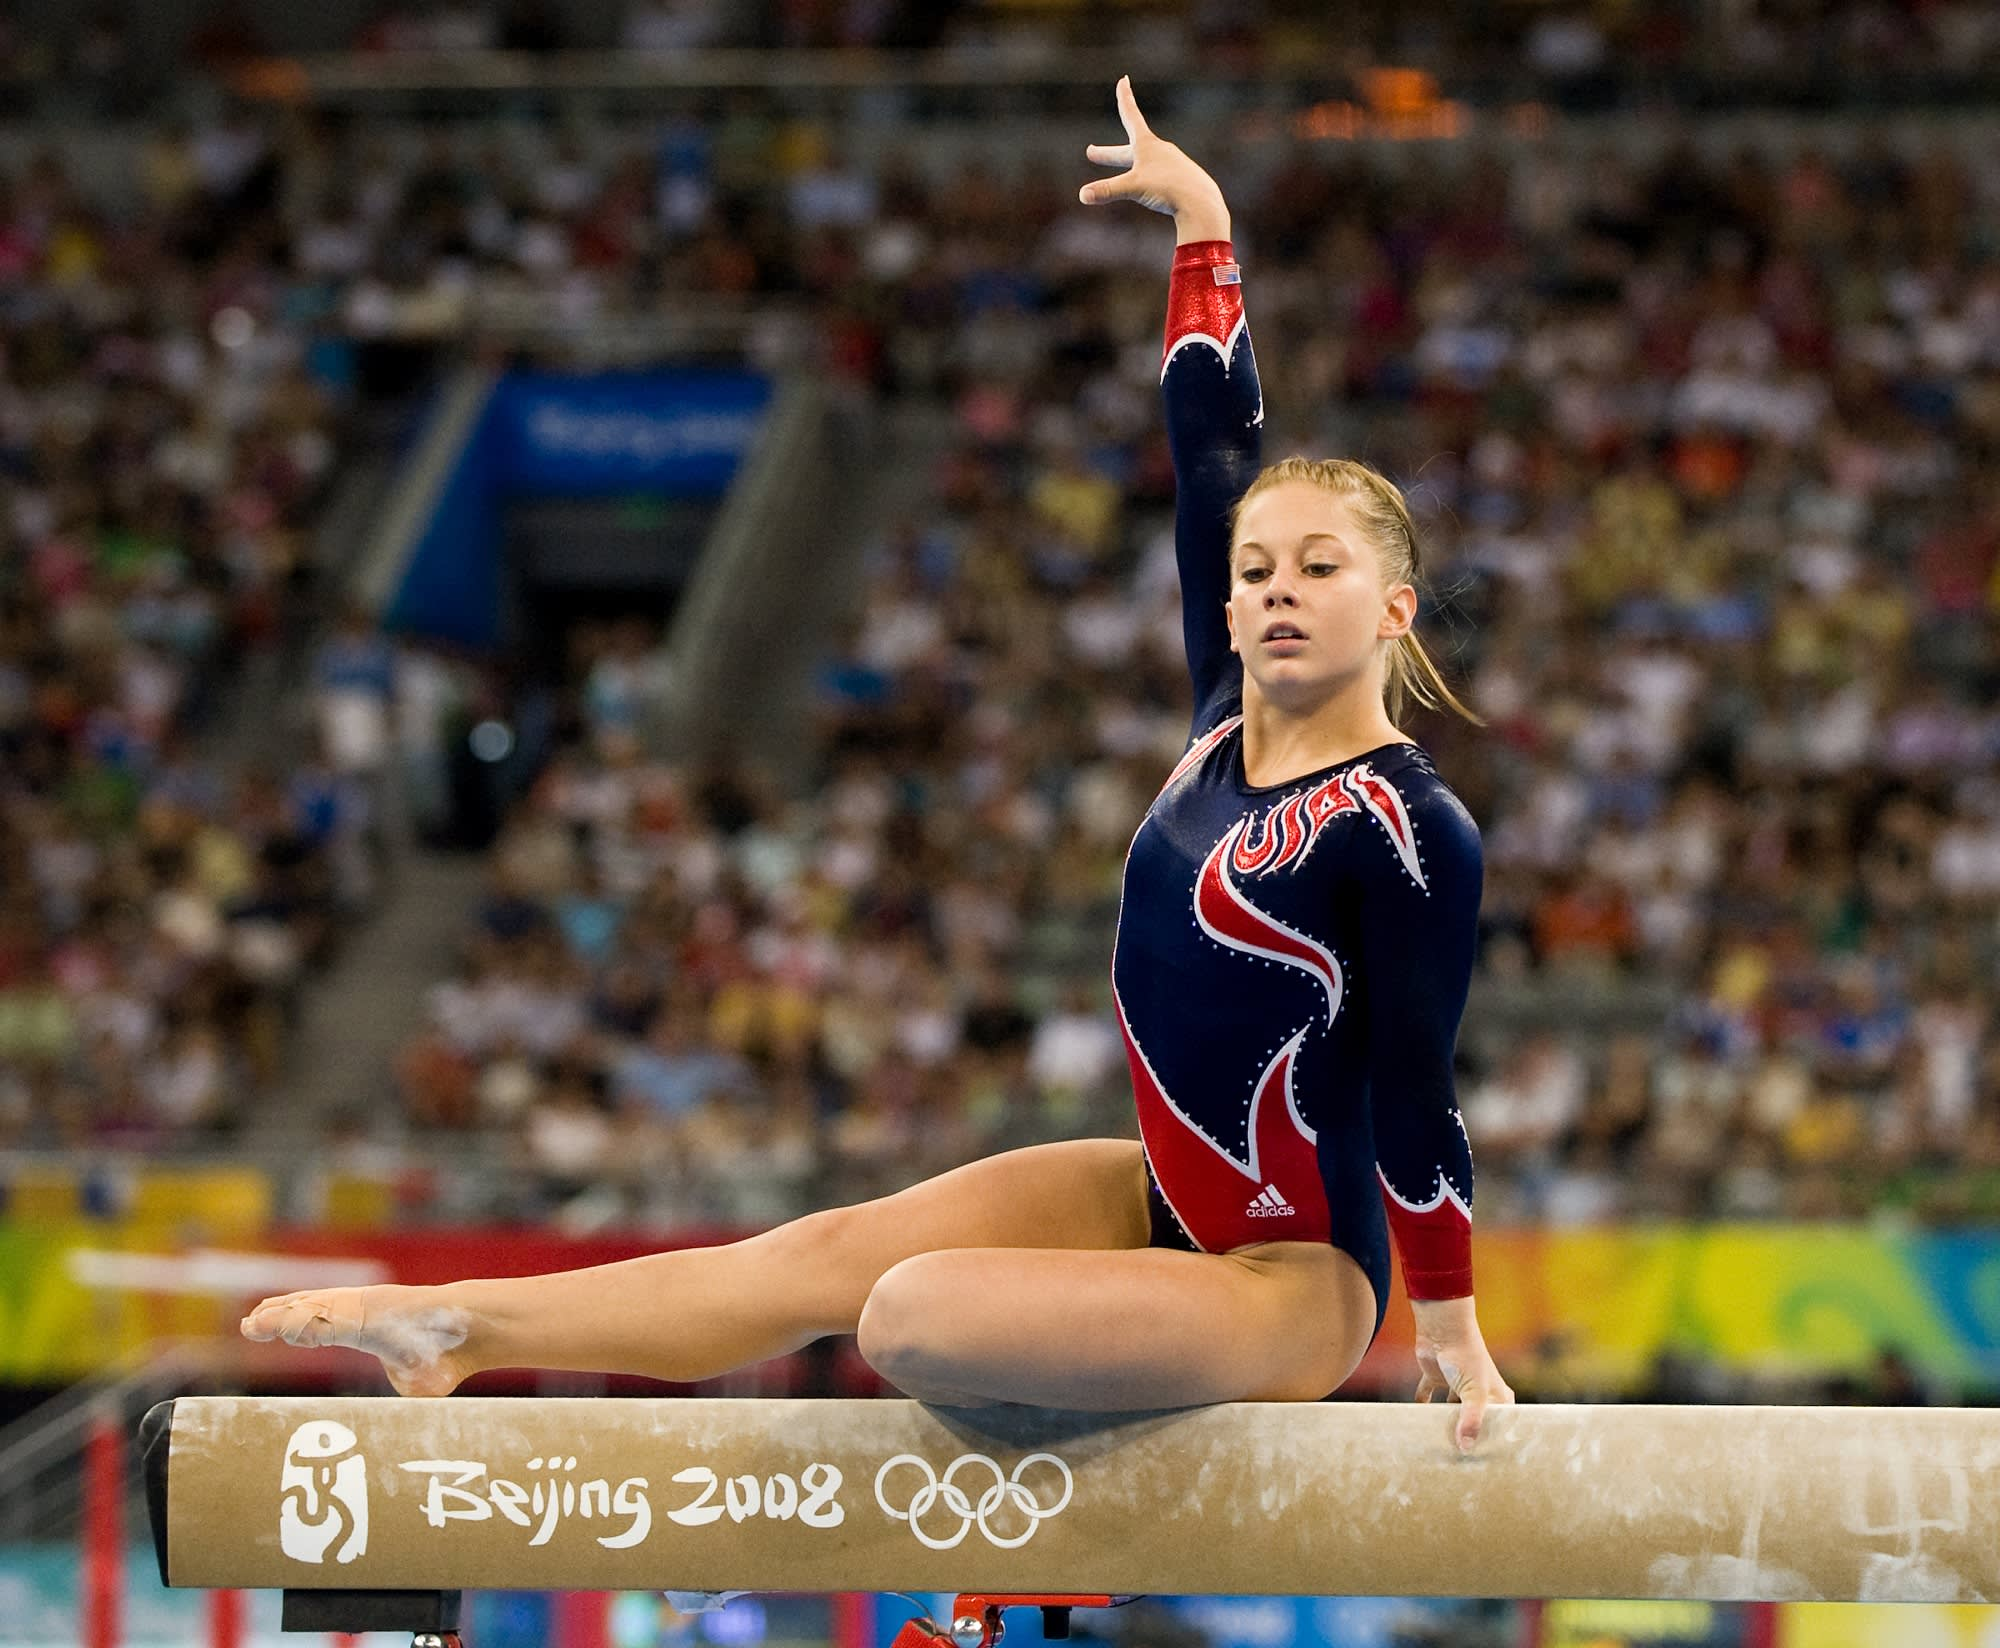 Forum on this topic: Anna Brecon, shawn-johnson-4-olympic-medals-in-gymnastics/